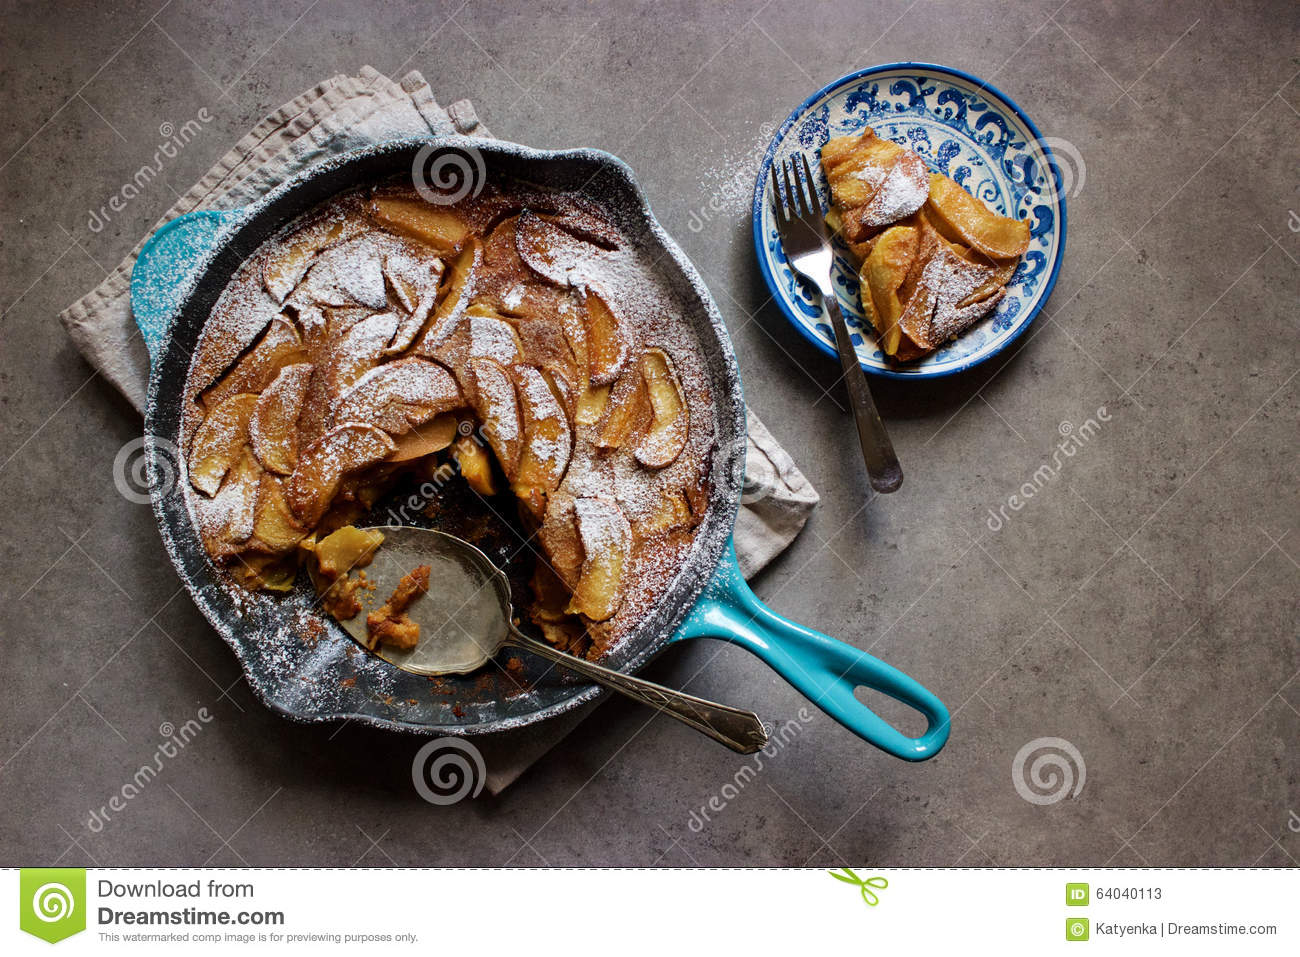 Roasted apple clafoutis (French custard cake) in cast iron pan